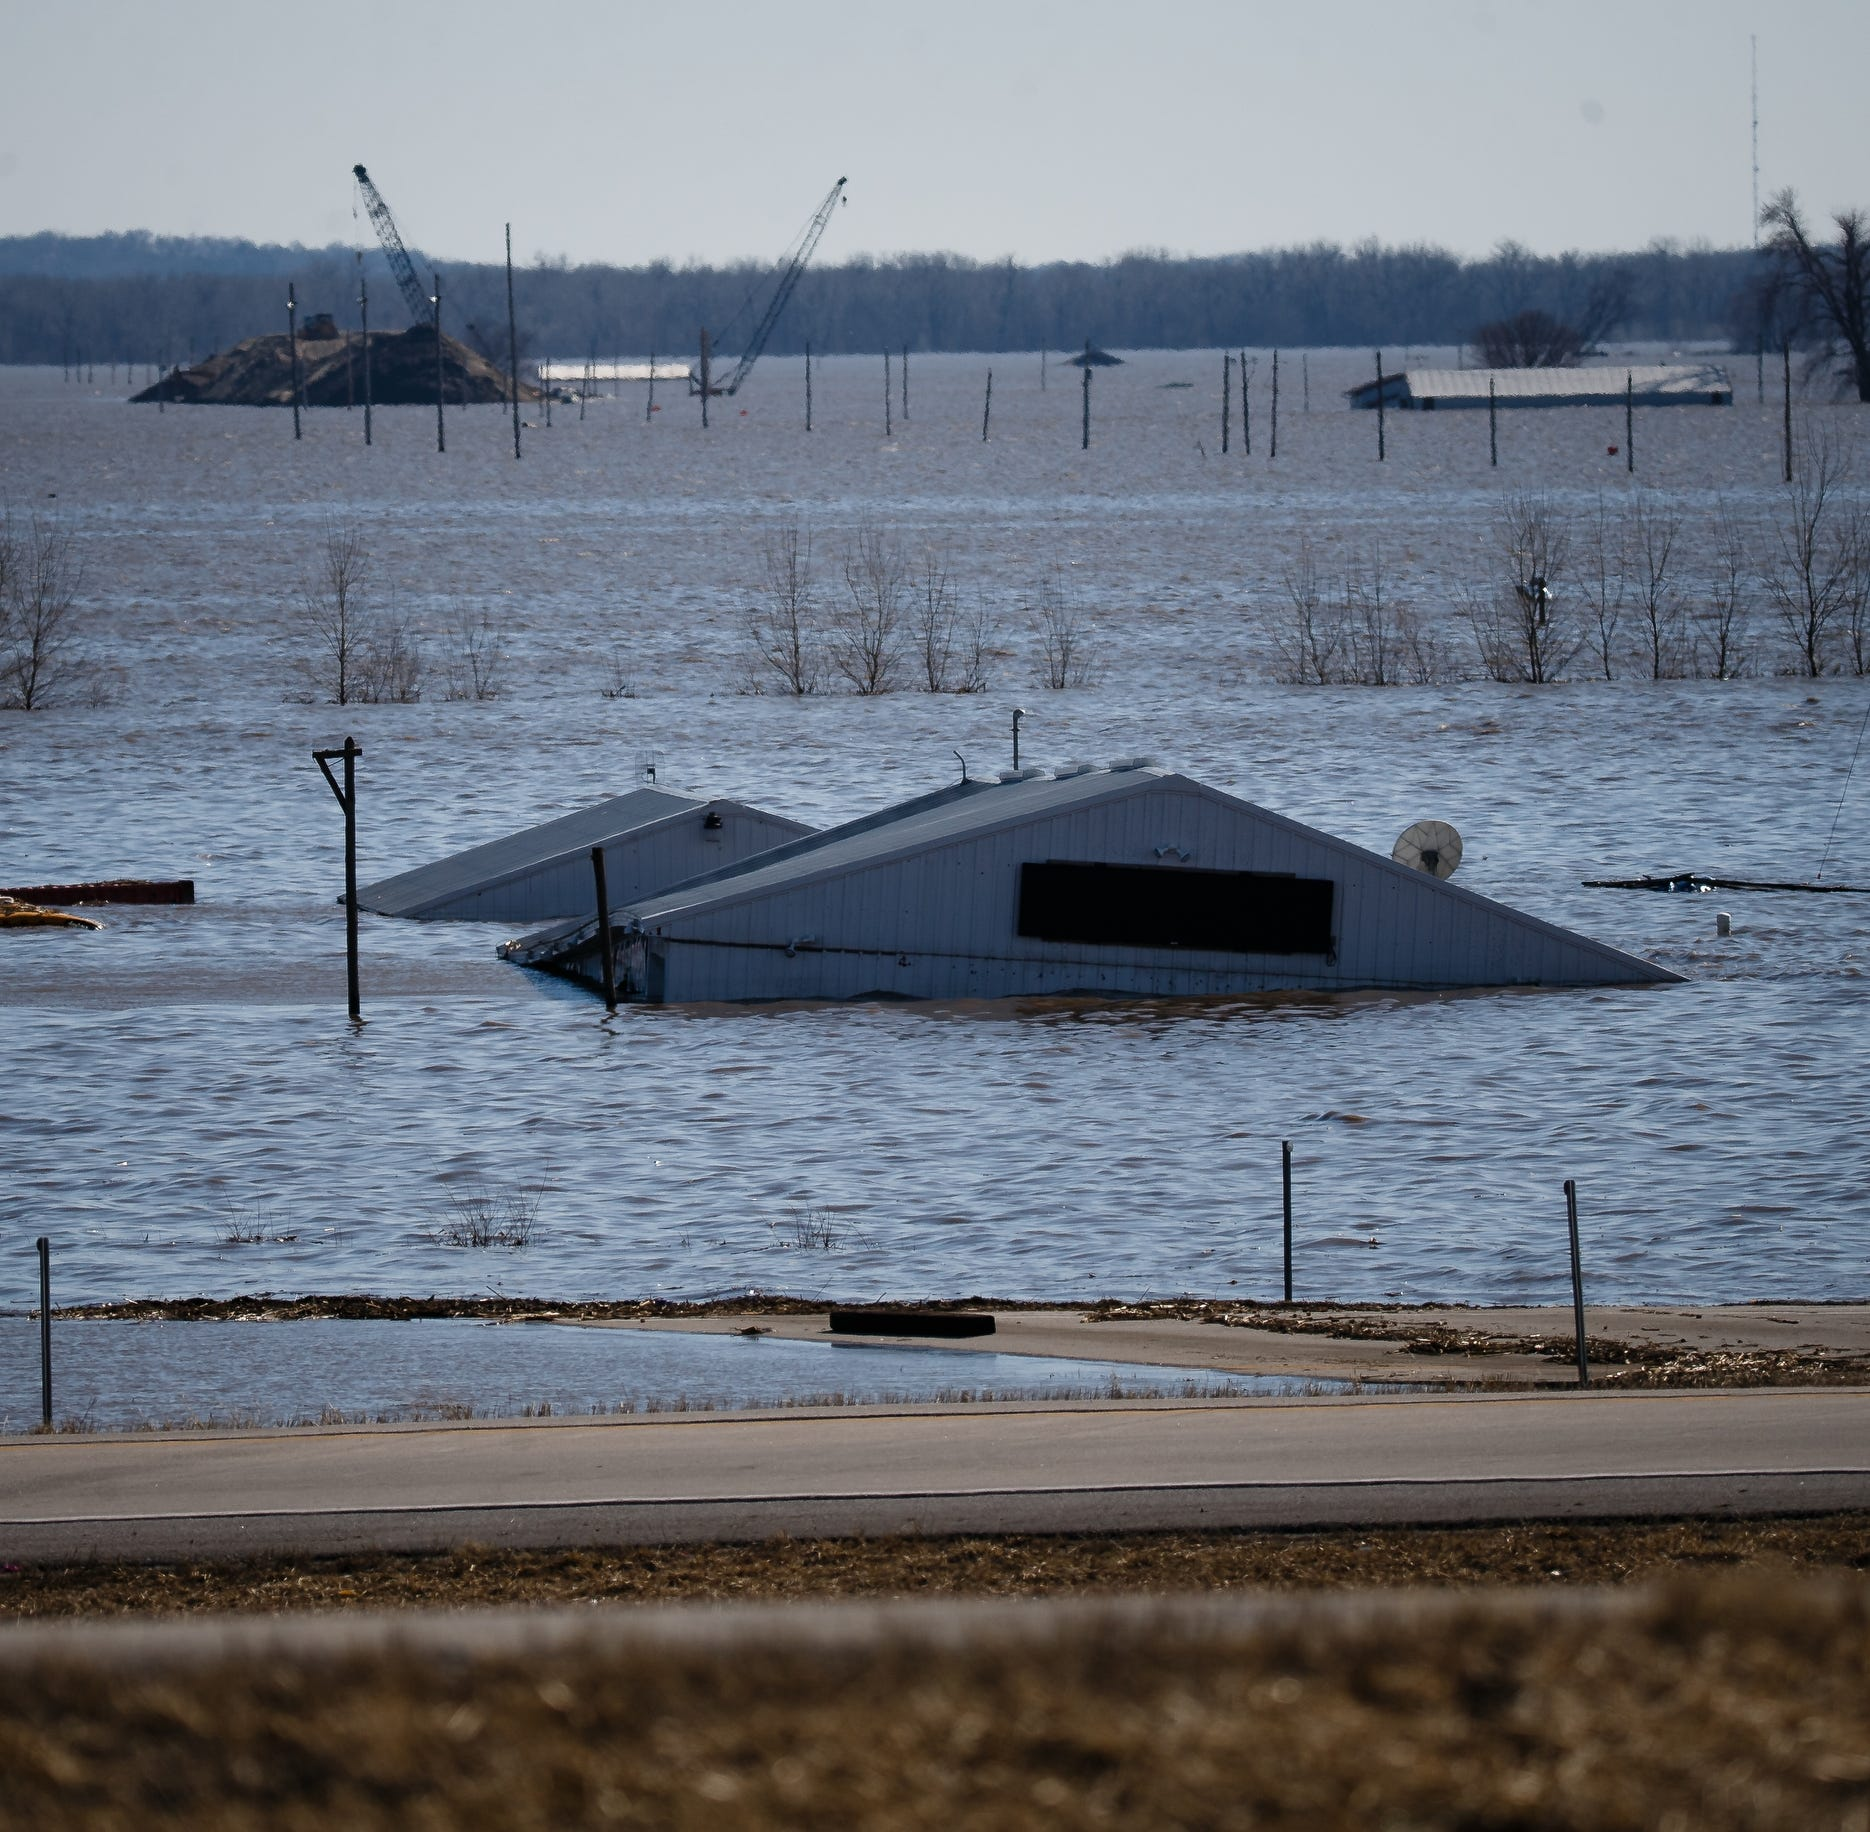 Iowa flooding: Damage from floodwaters reaches $1.6 billion, Gov. Kim Reynolds estimates